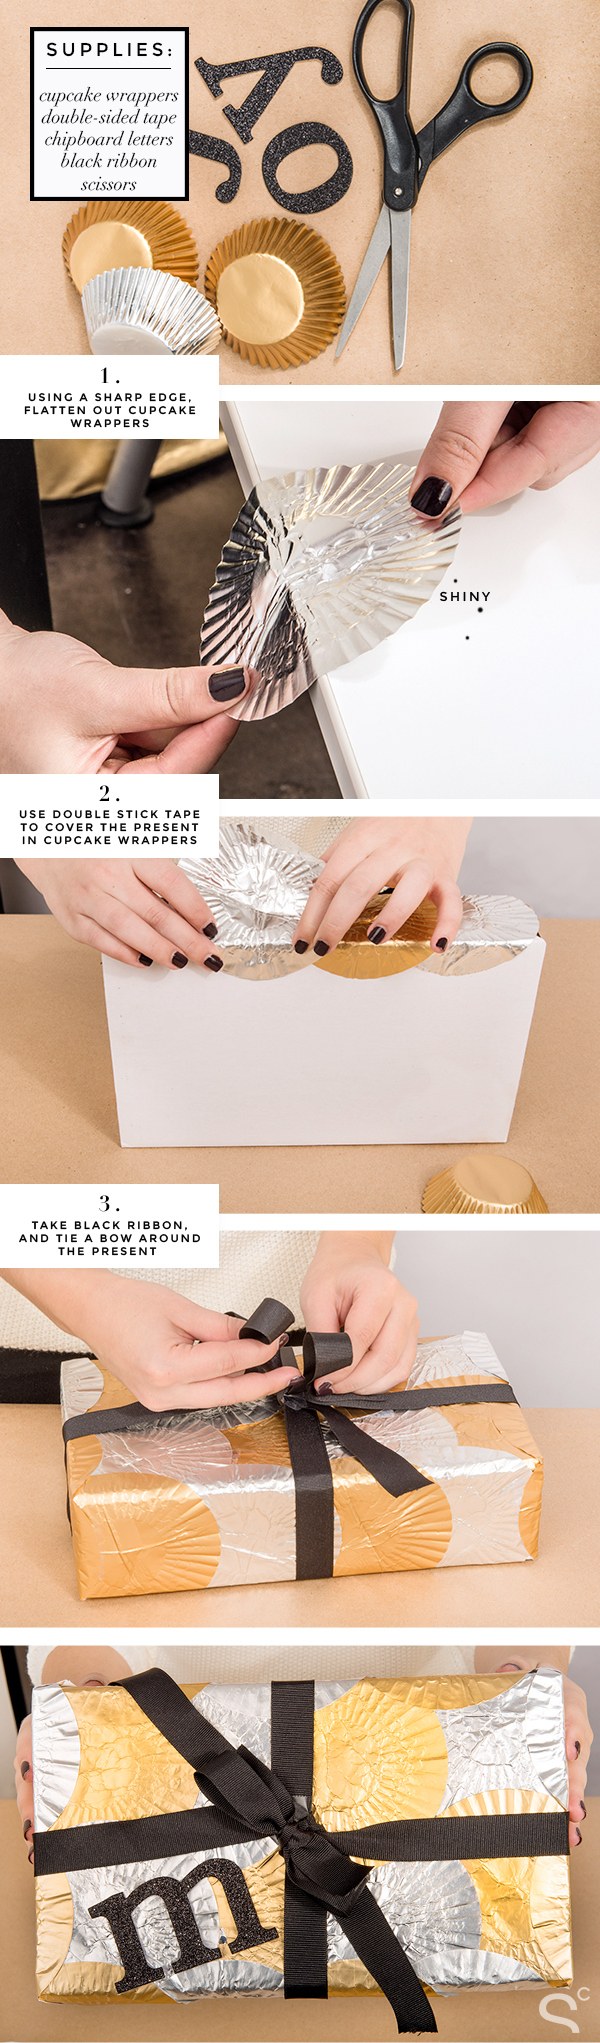 how-to-wrap-a-gift-in-a-unique-creative-way